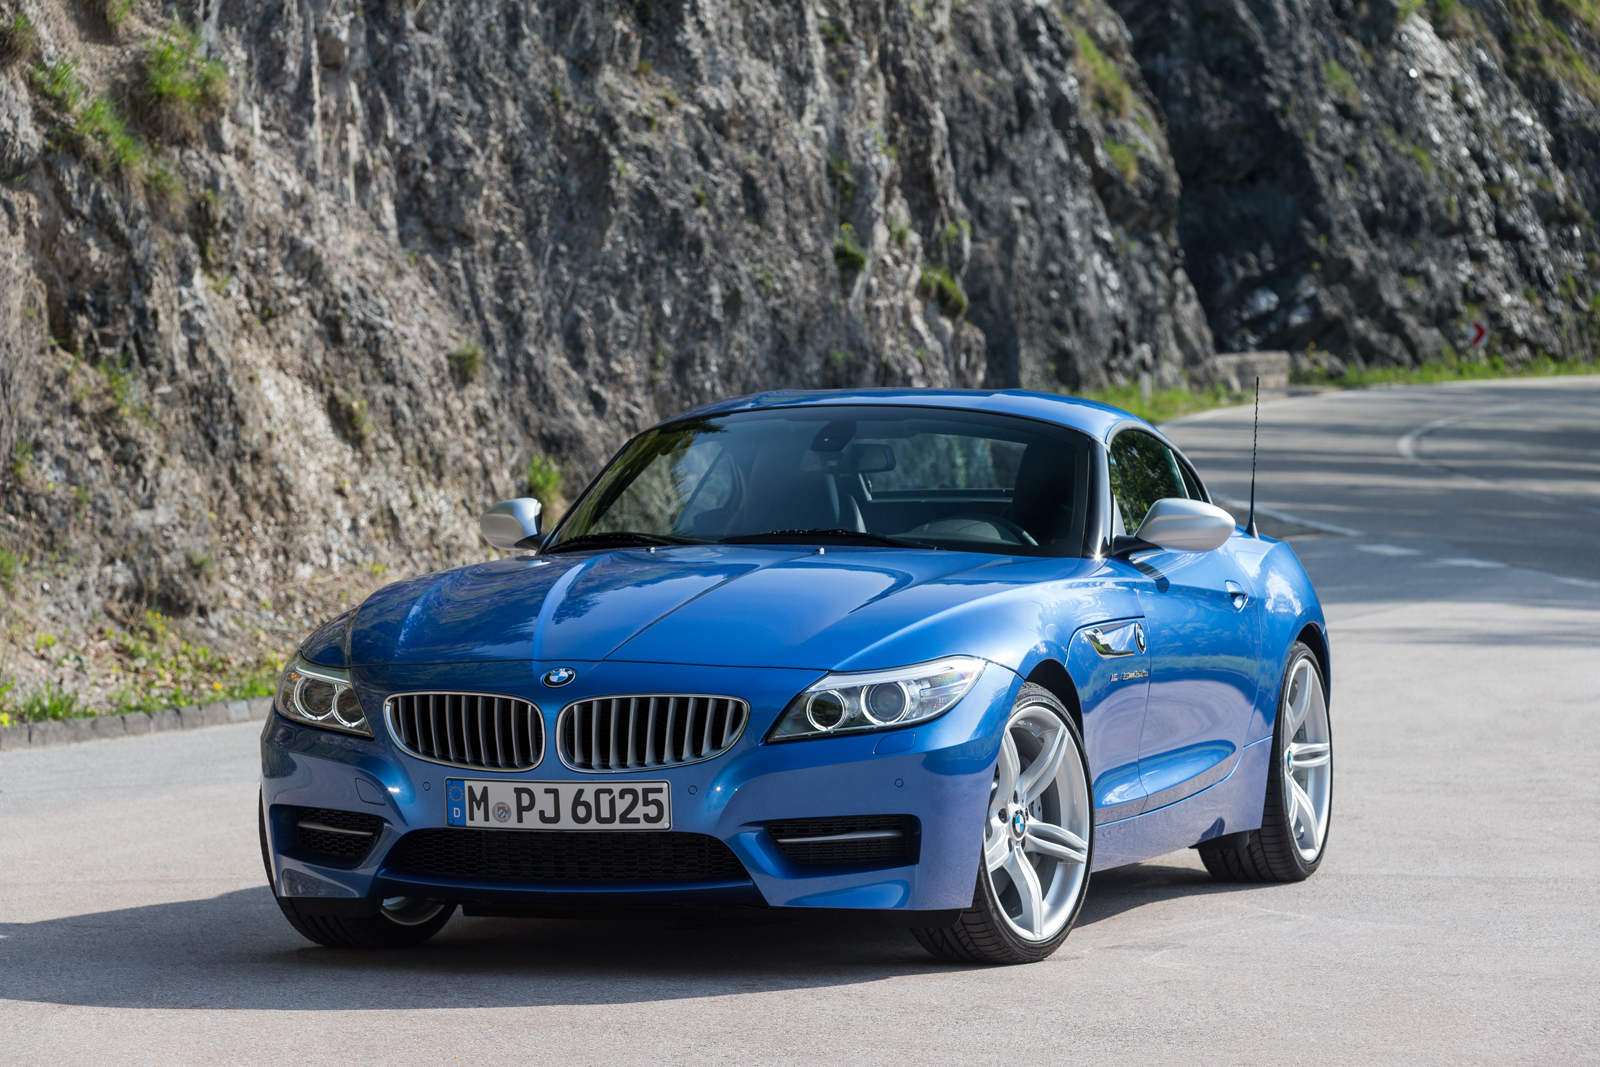 BMW Z4 Adds Iconic Estoril Blue Paint to Lineup